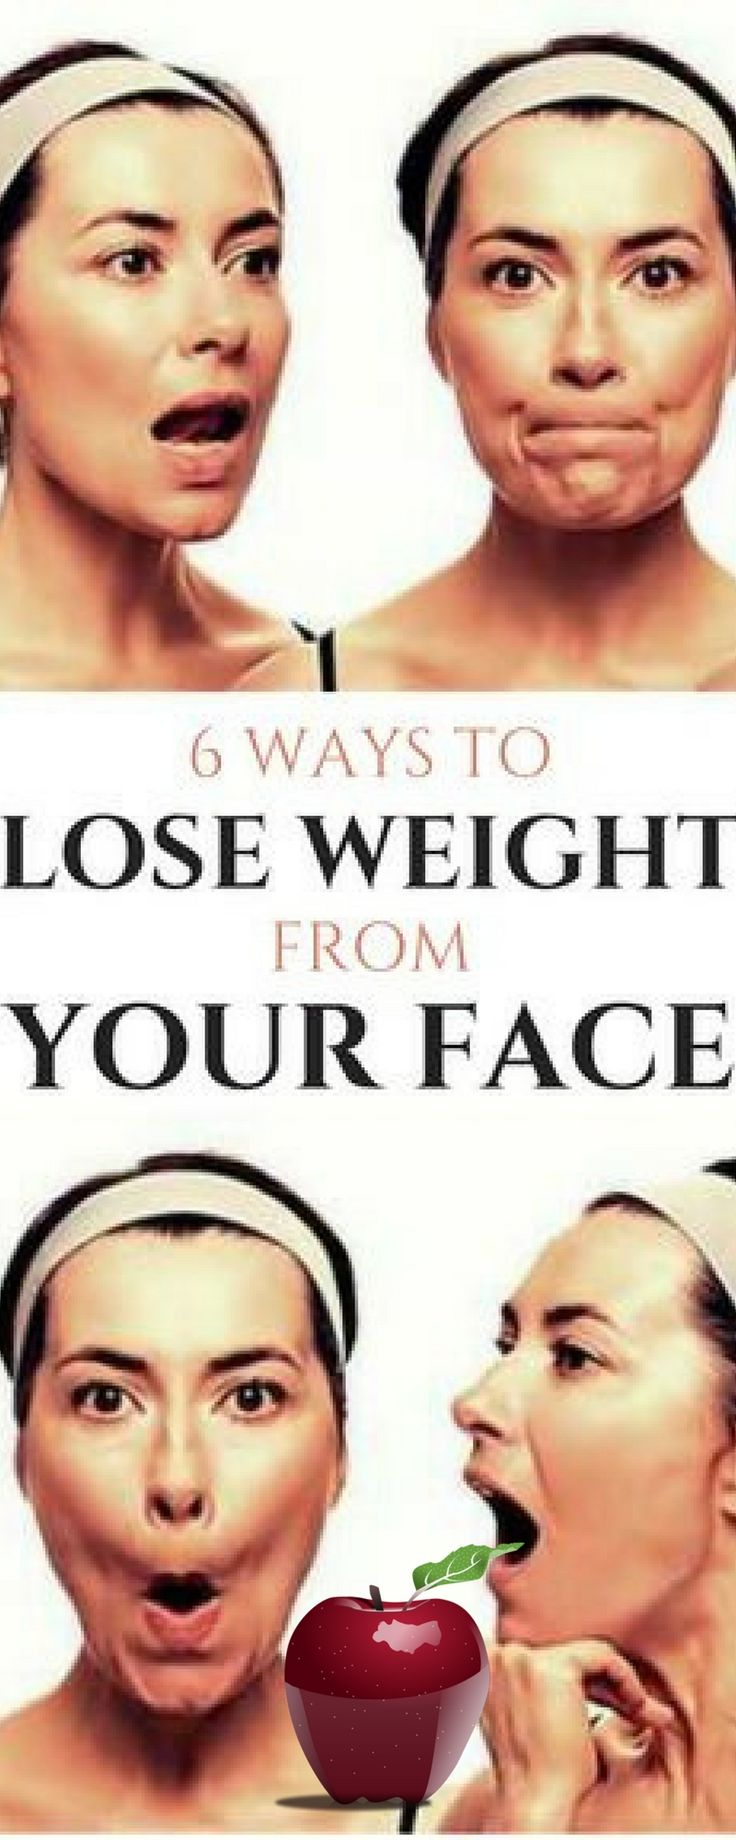 6 WAYS TO LOSE WEIGHT FROM YOUR FACE(REPIN IT)